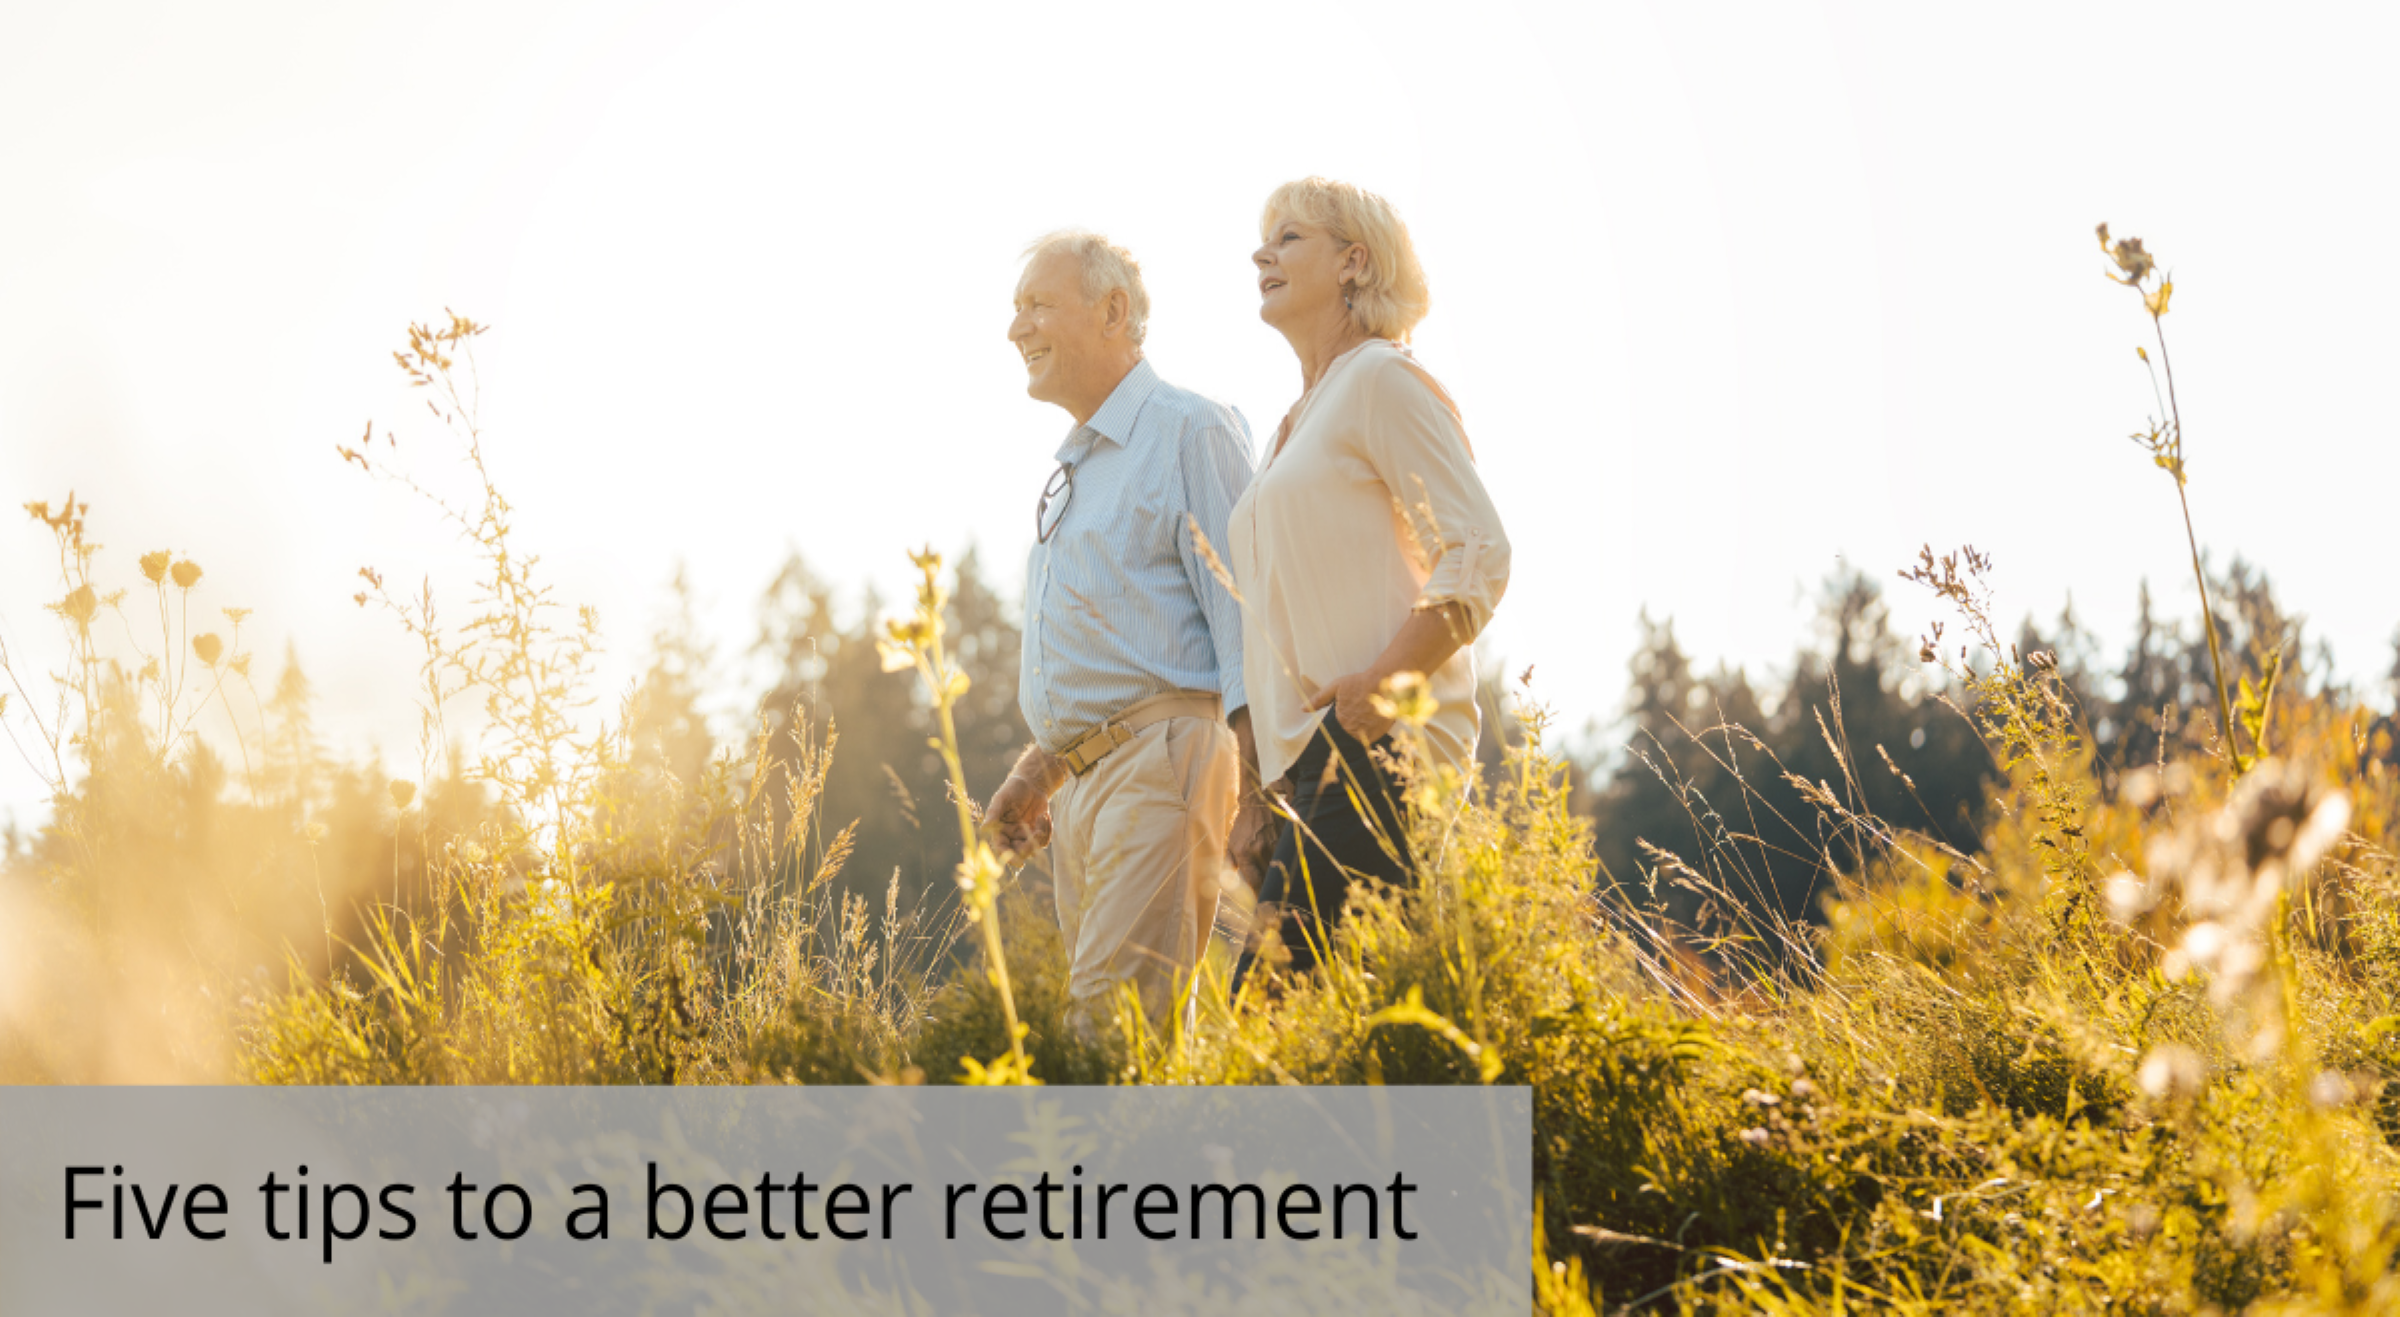 Five tips to a better retirement